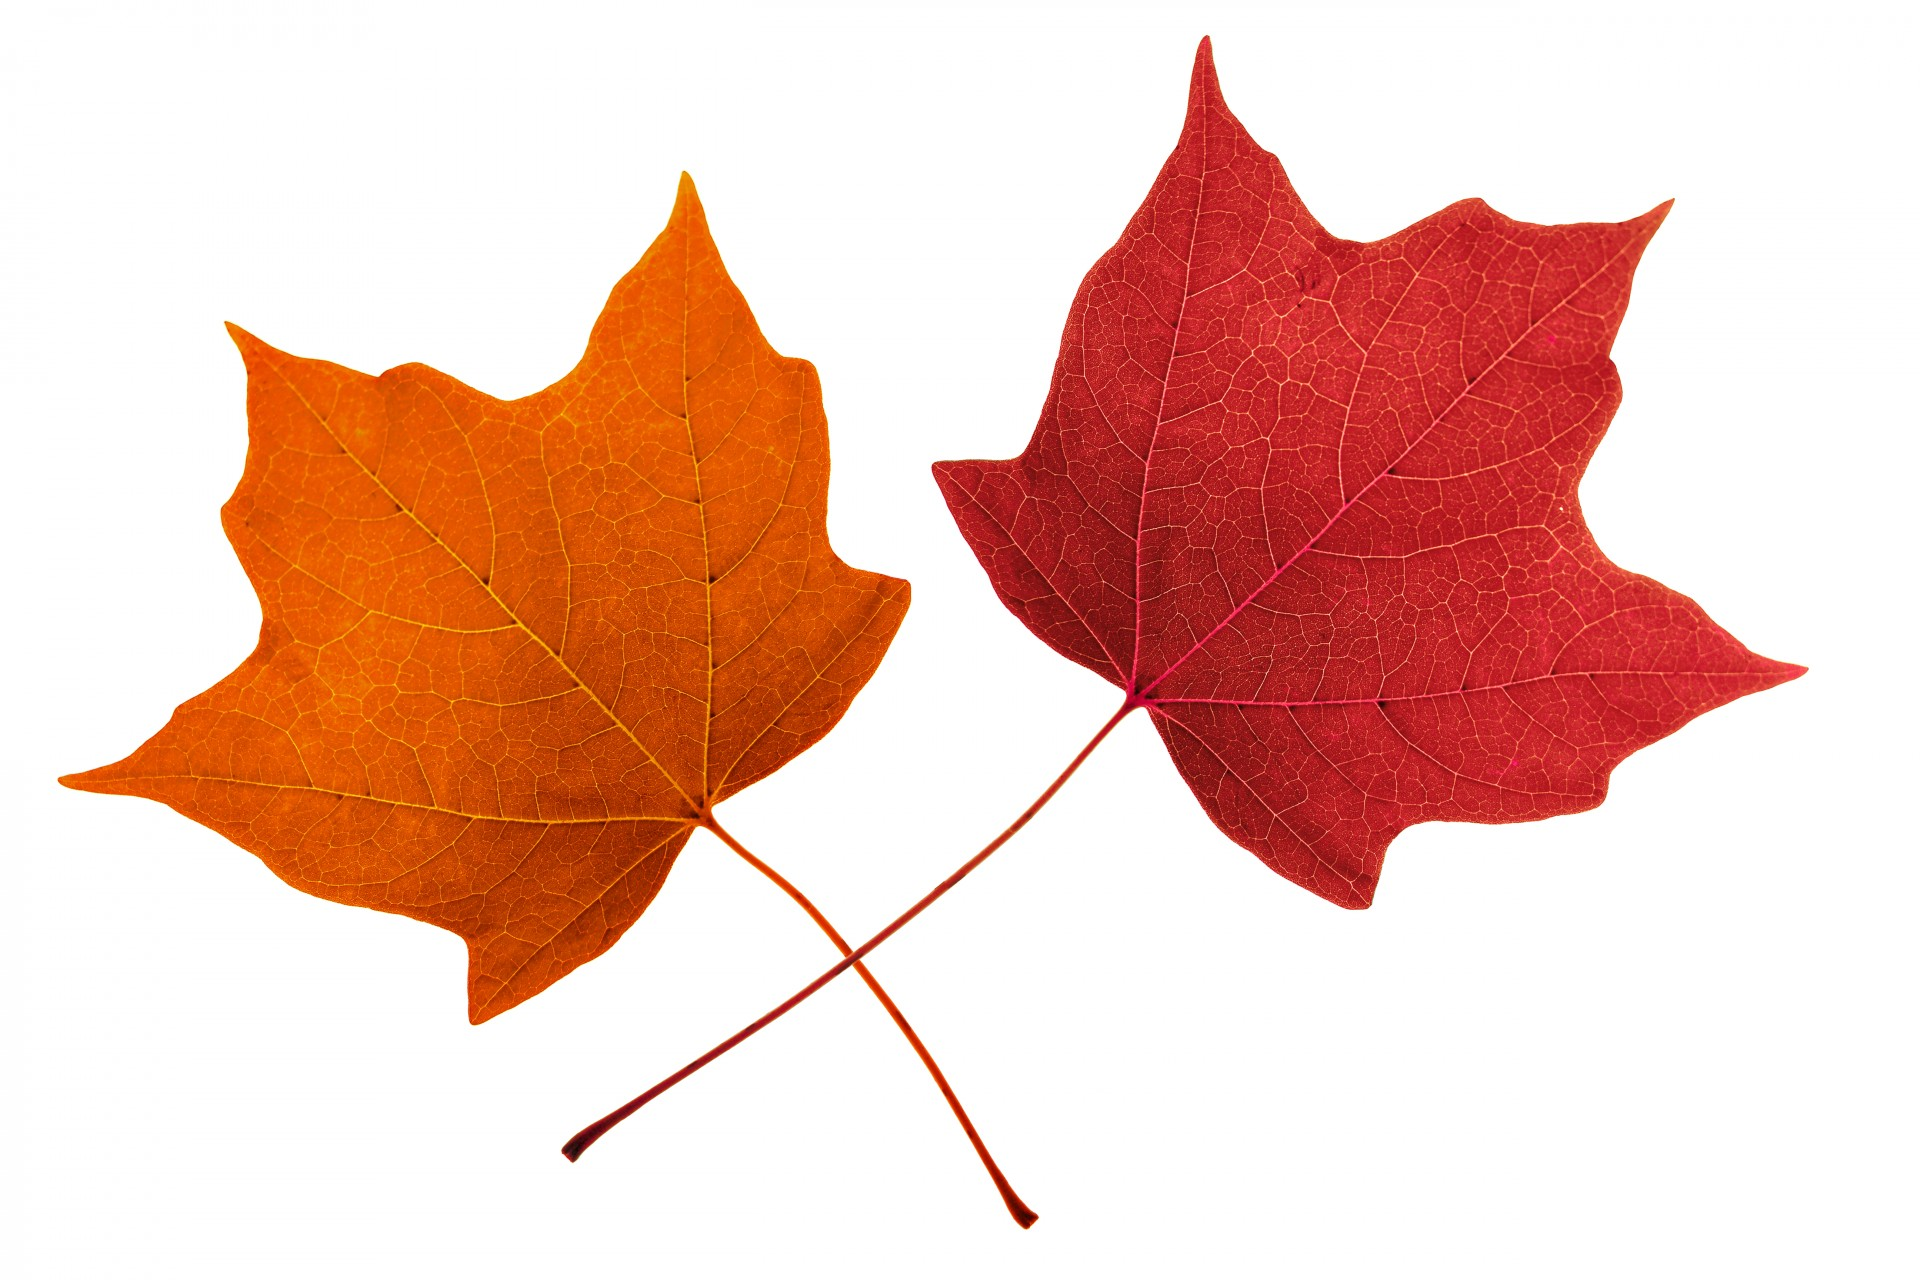 Multicolored maple leaf clipart vector download Leaves,isolated,maple,maple leaves,red - free photo from needpix.com vector download